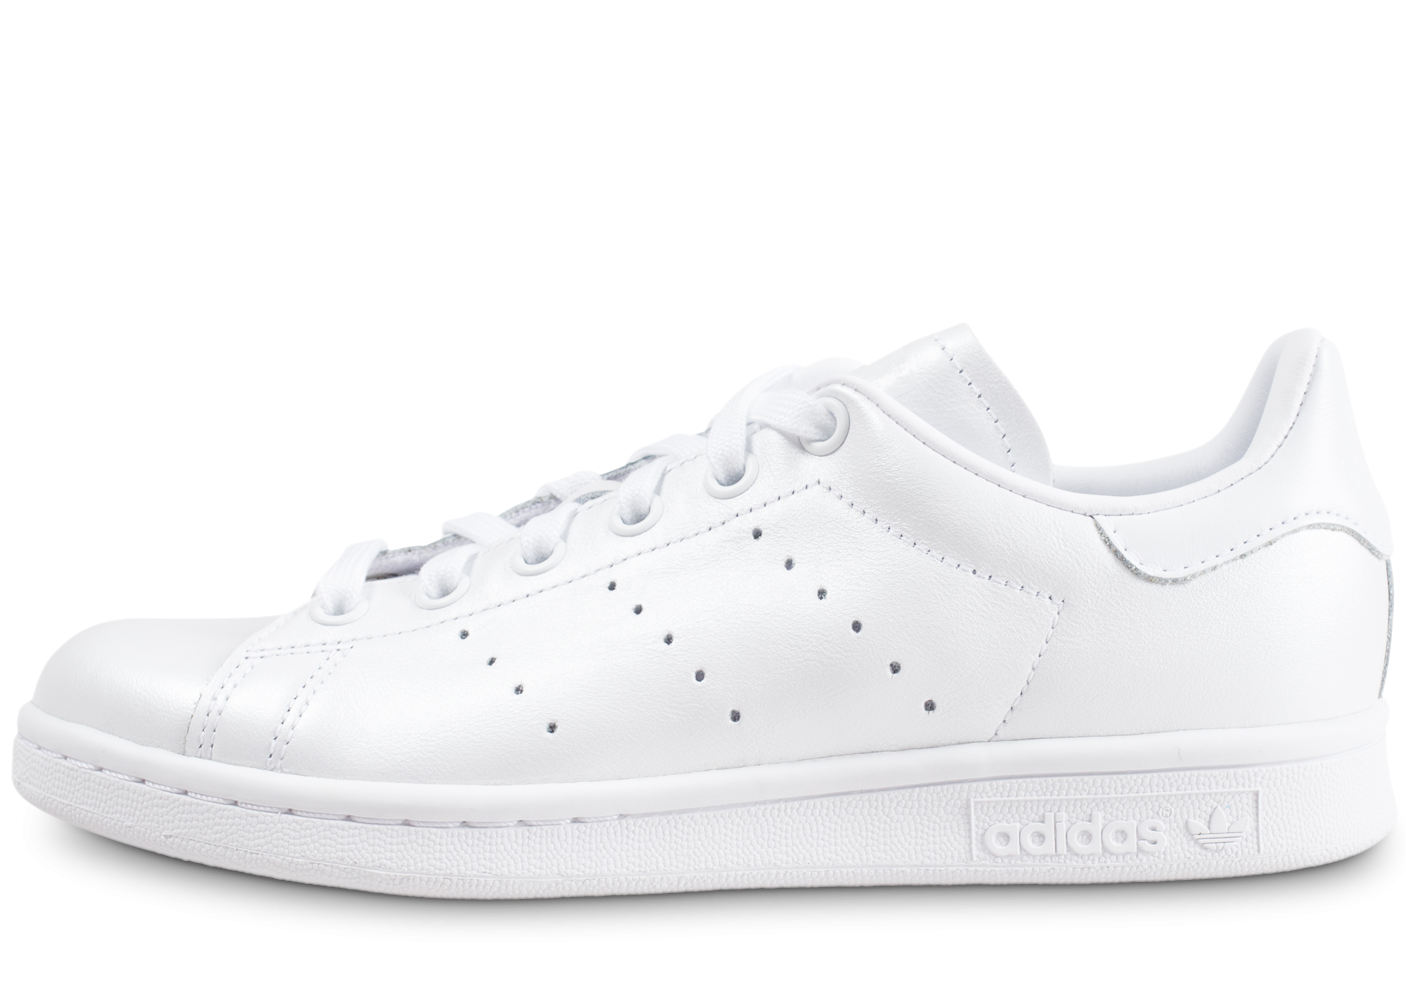 usine authentique 07822 eac22 adidas Stan Smith triple blanc shinny femme